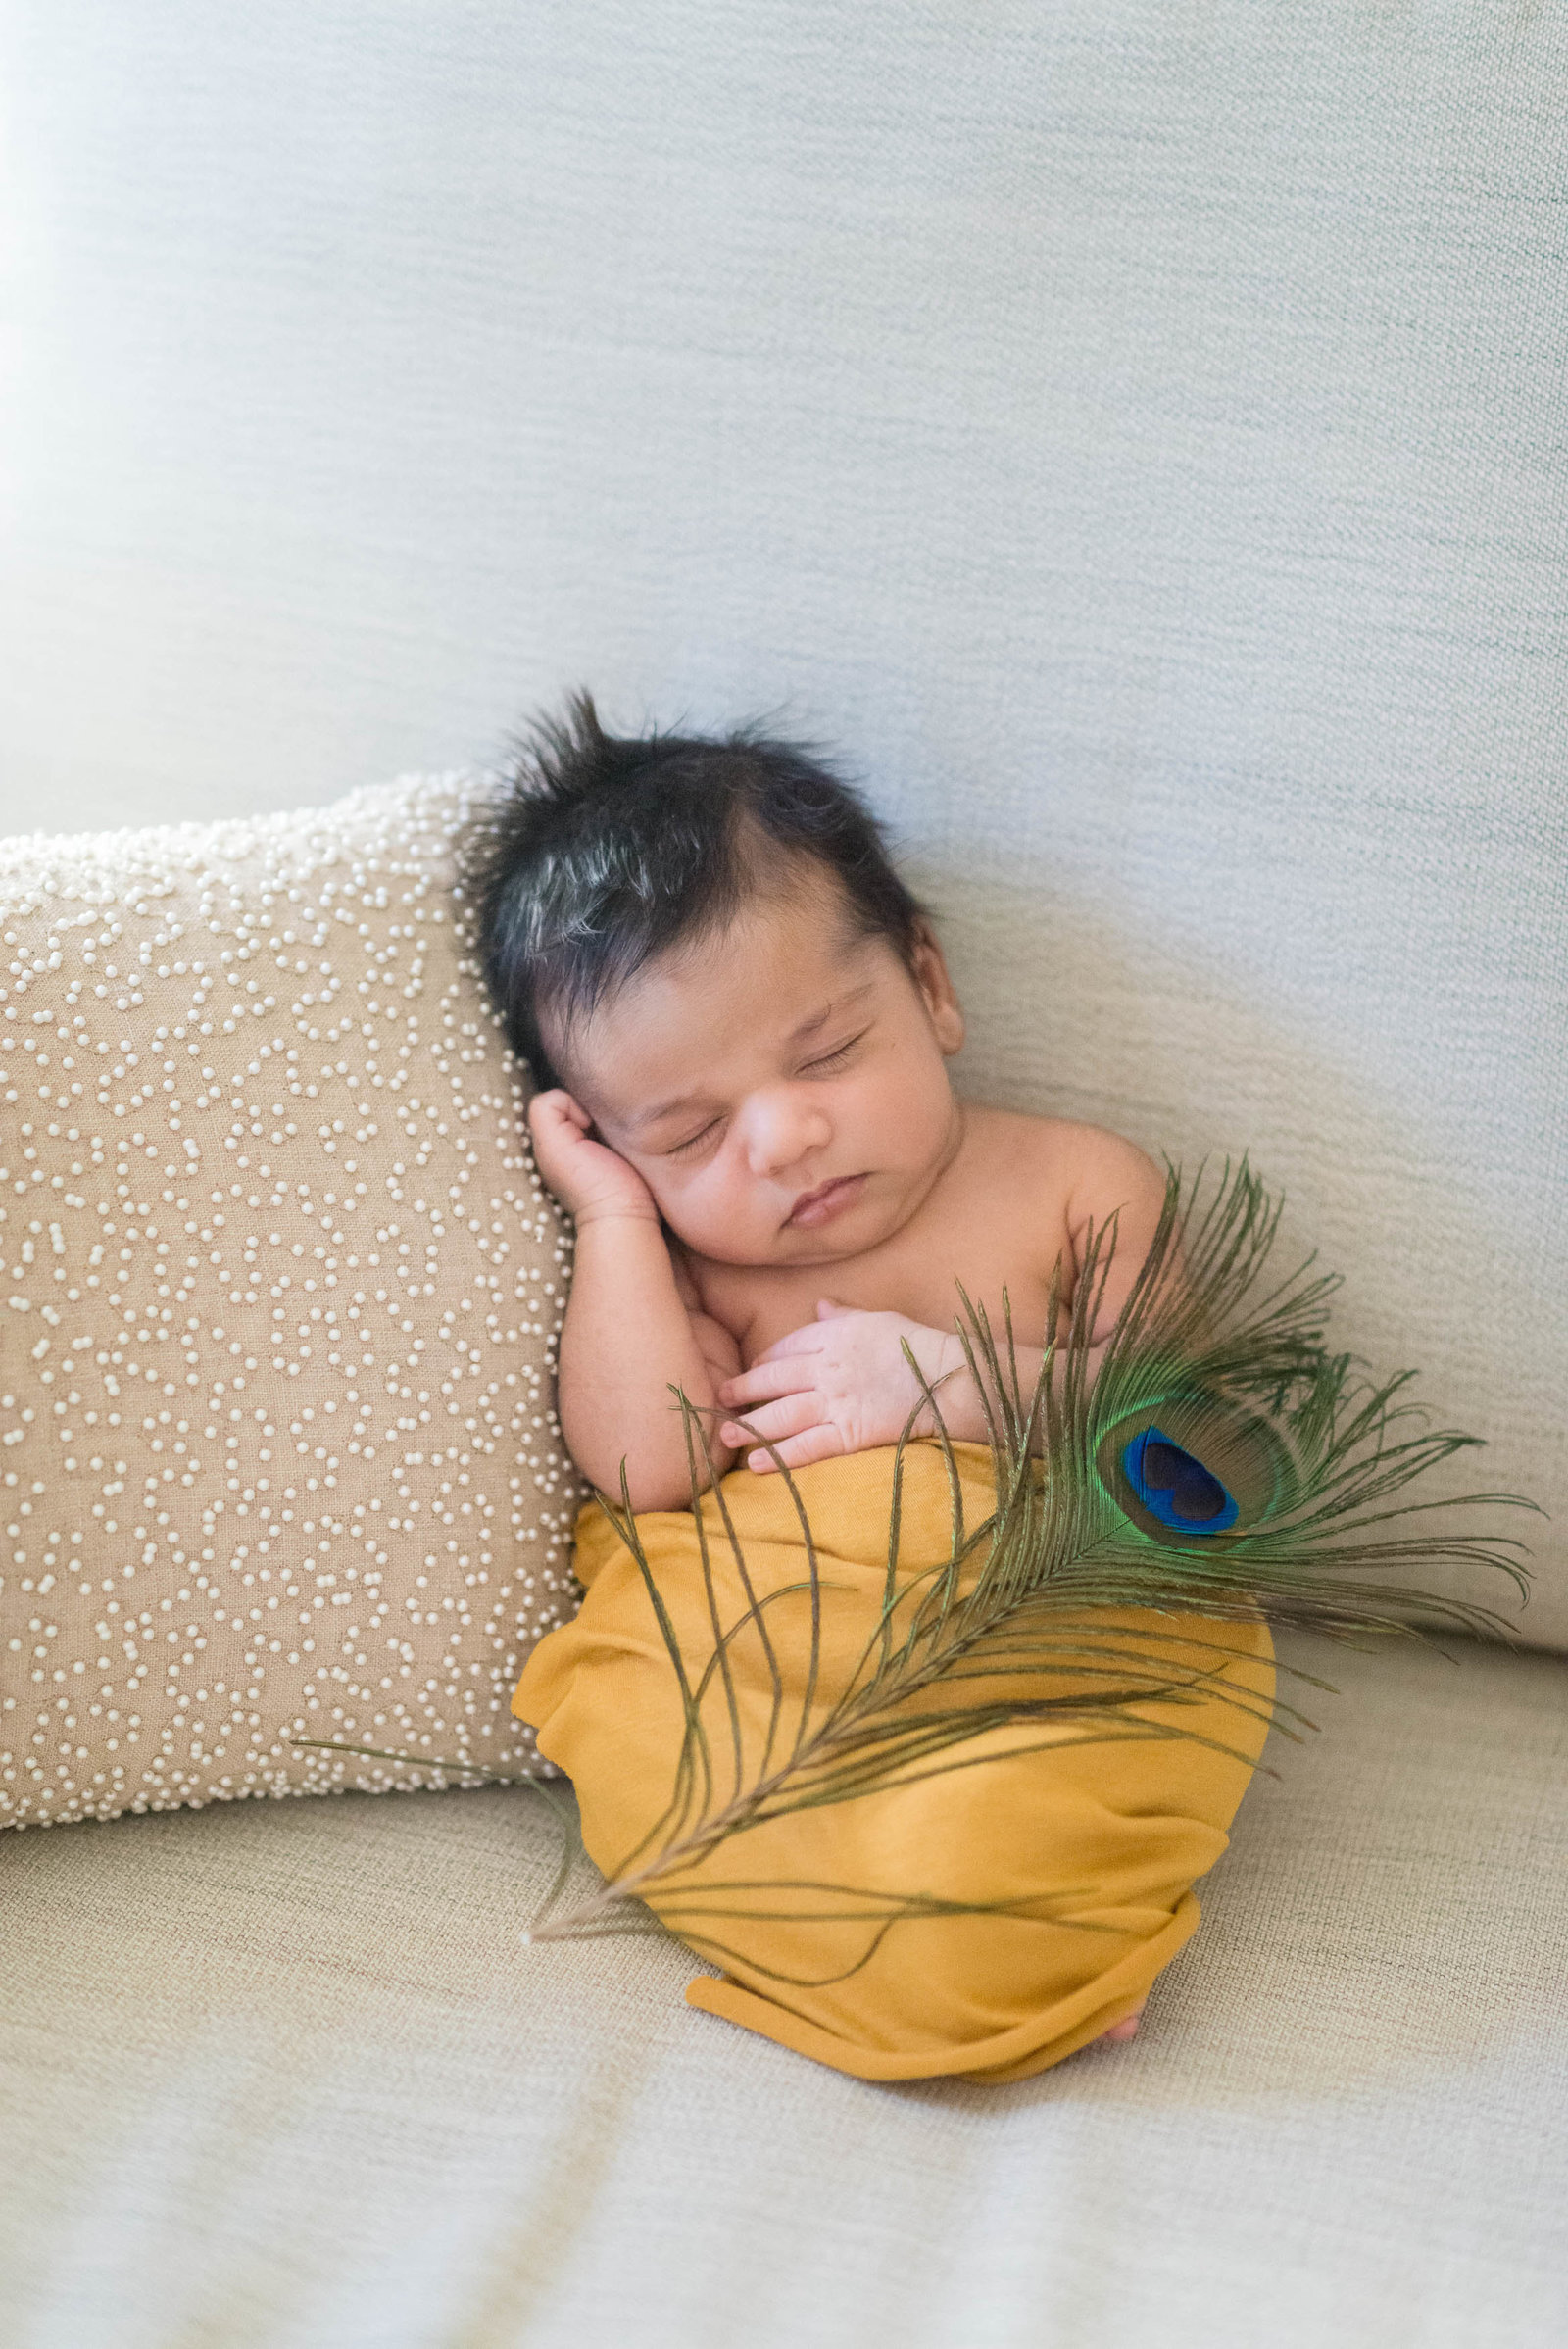 Boston-Newborn-Photographer-Lifestyle-Documentary-Home-Styled-Session-265